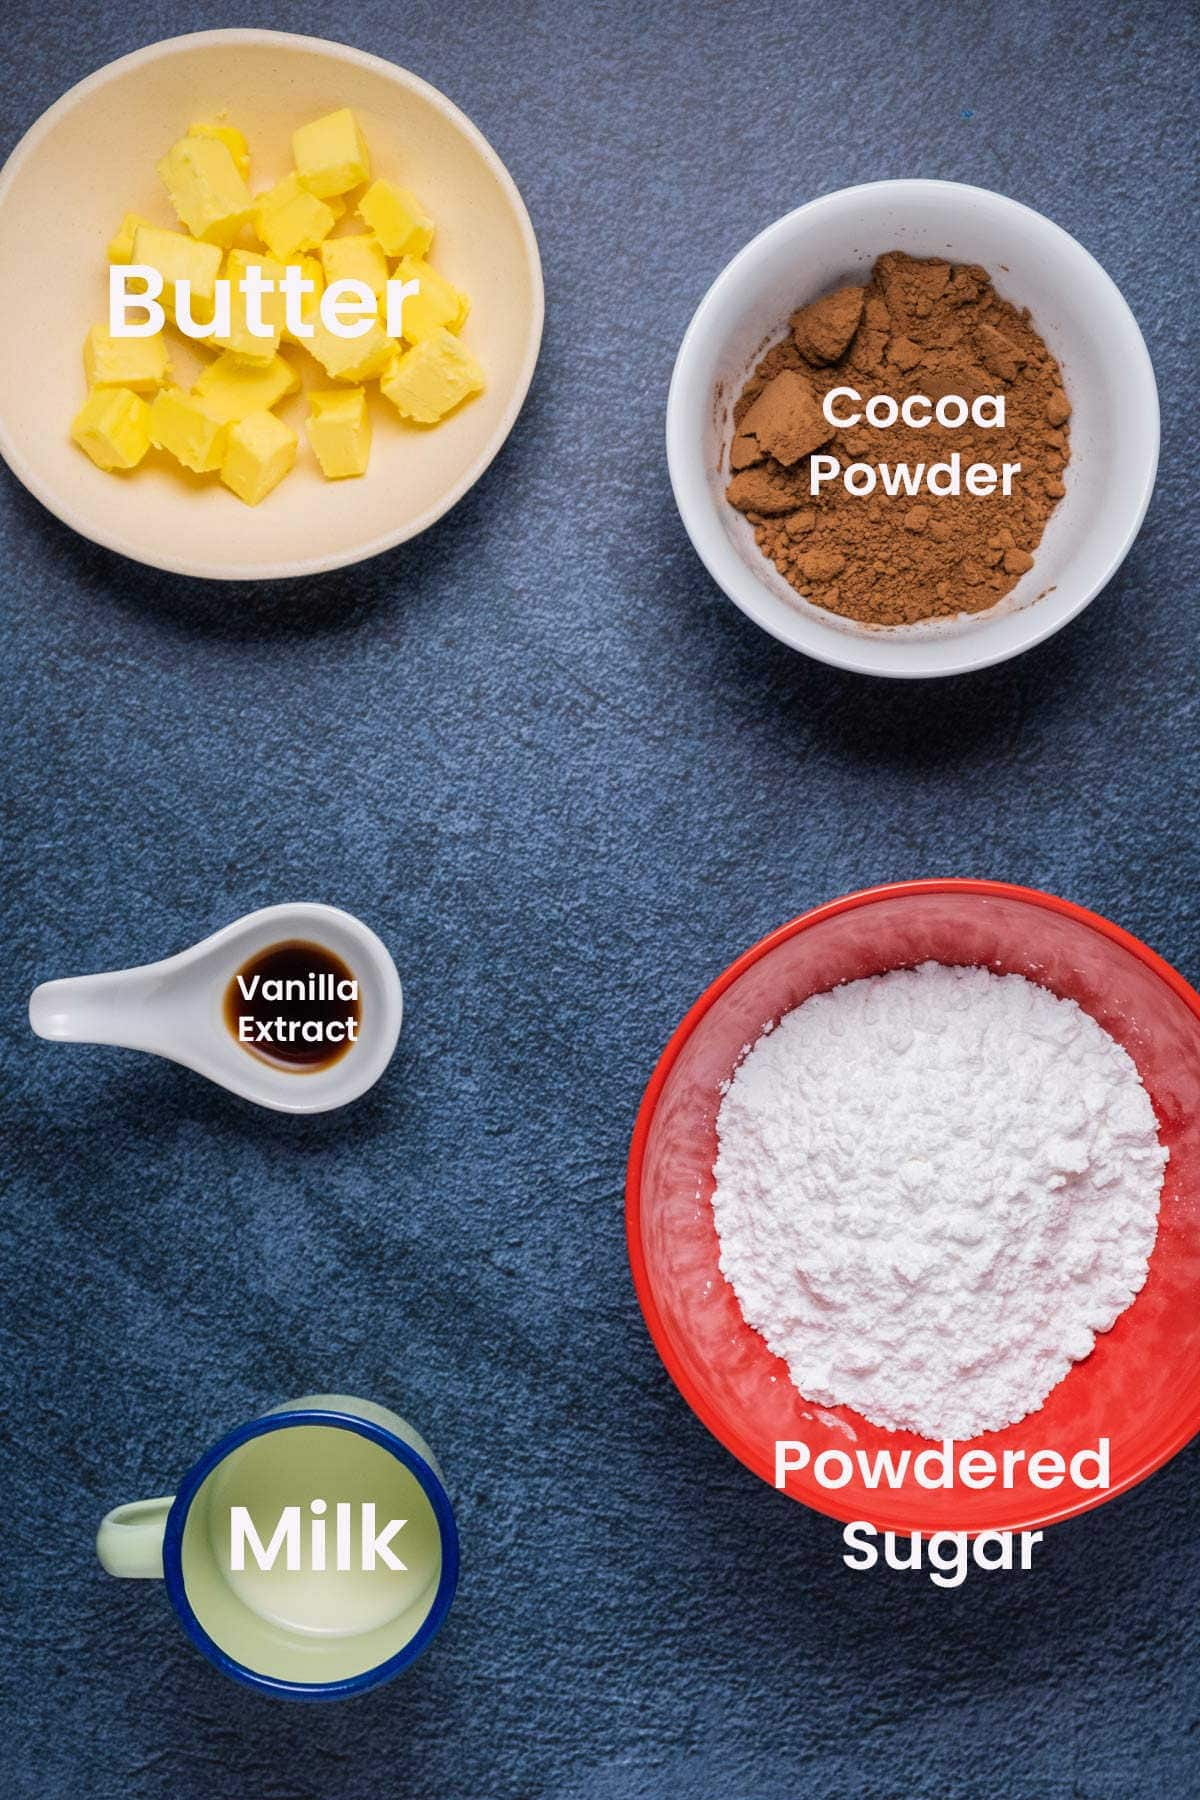 Ingredients to make a small batch of chocolate buttercream frosting.